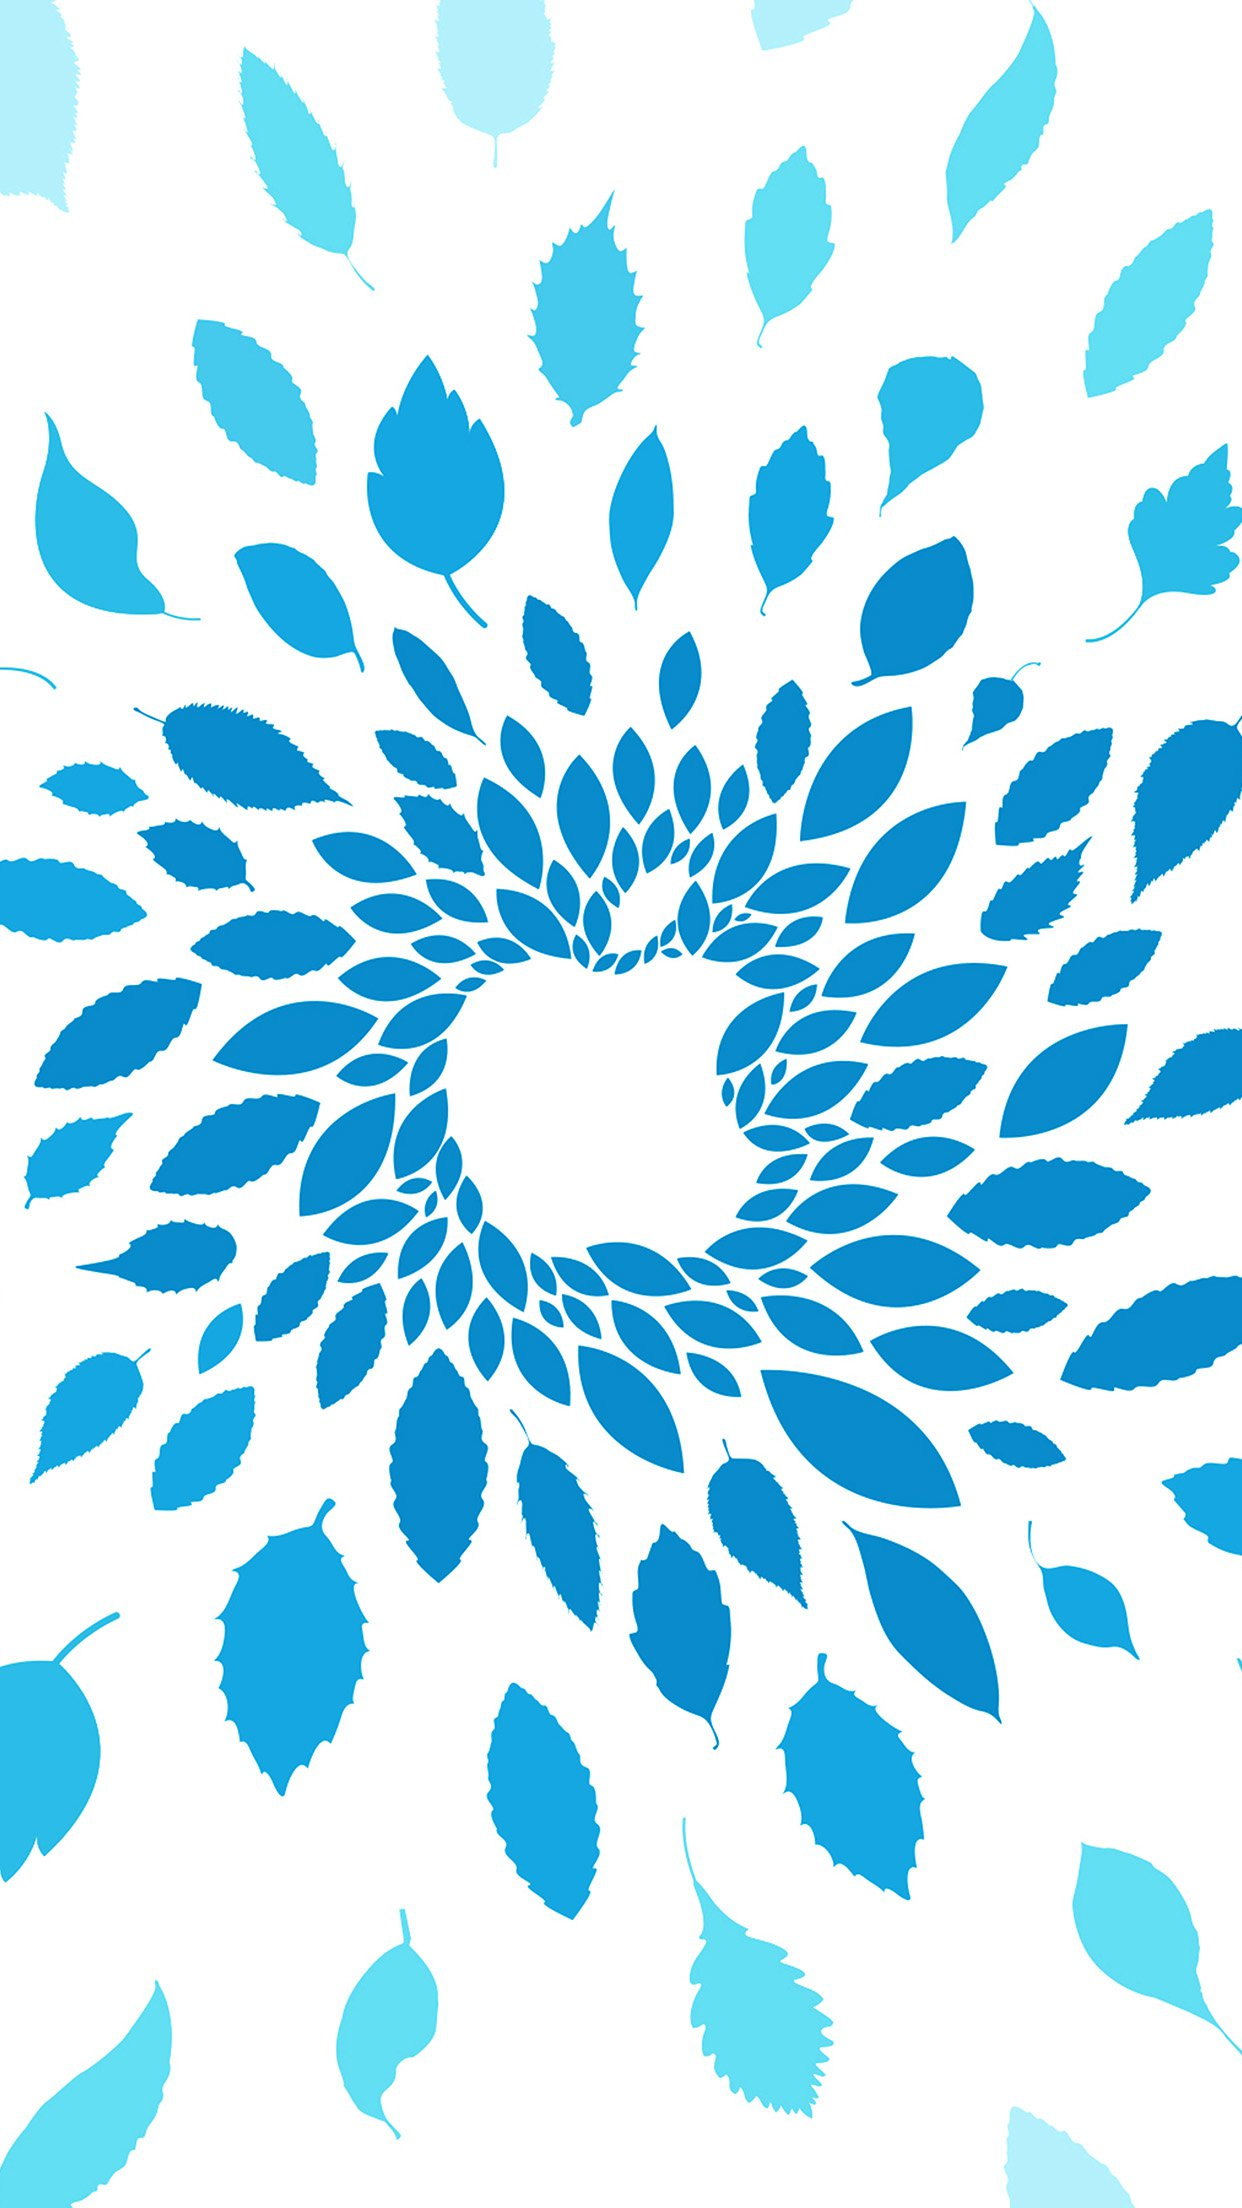 Apple Store Leafs Art Pattern Blue Android wallpaper